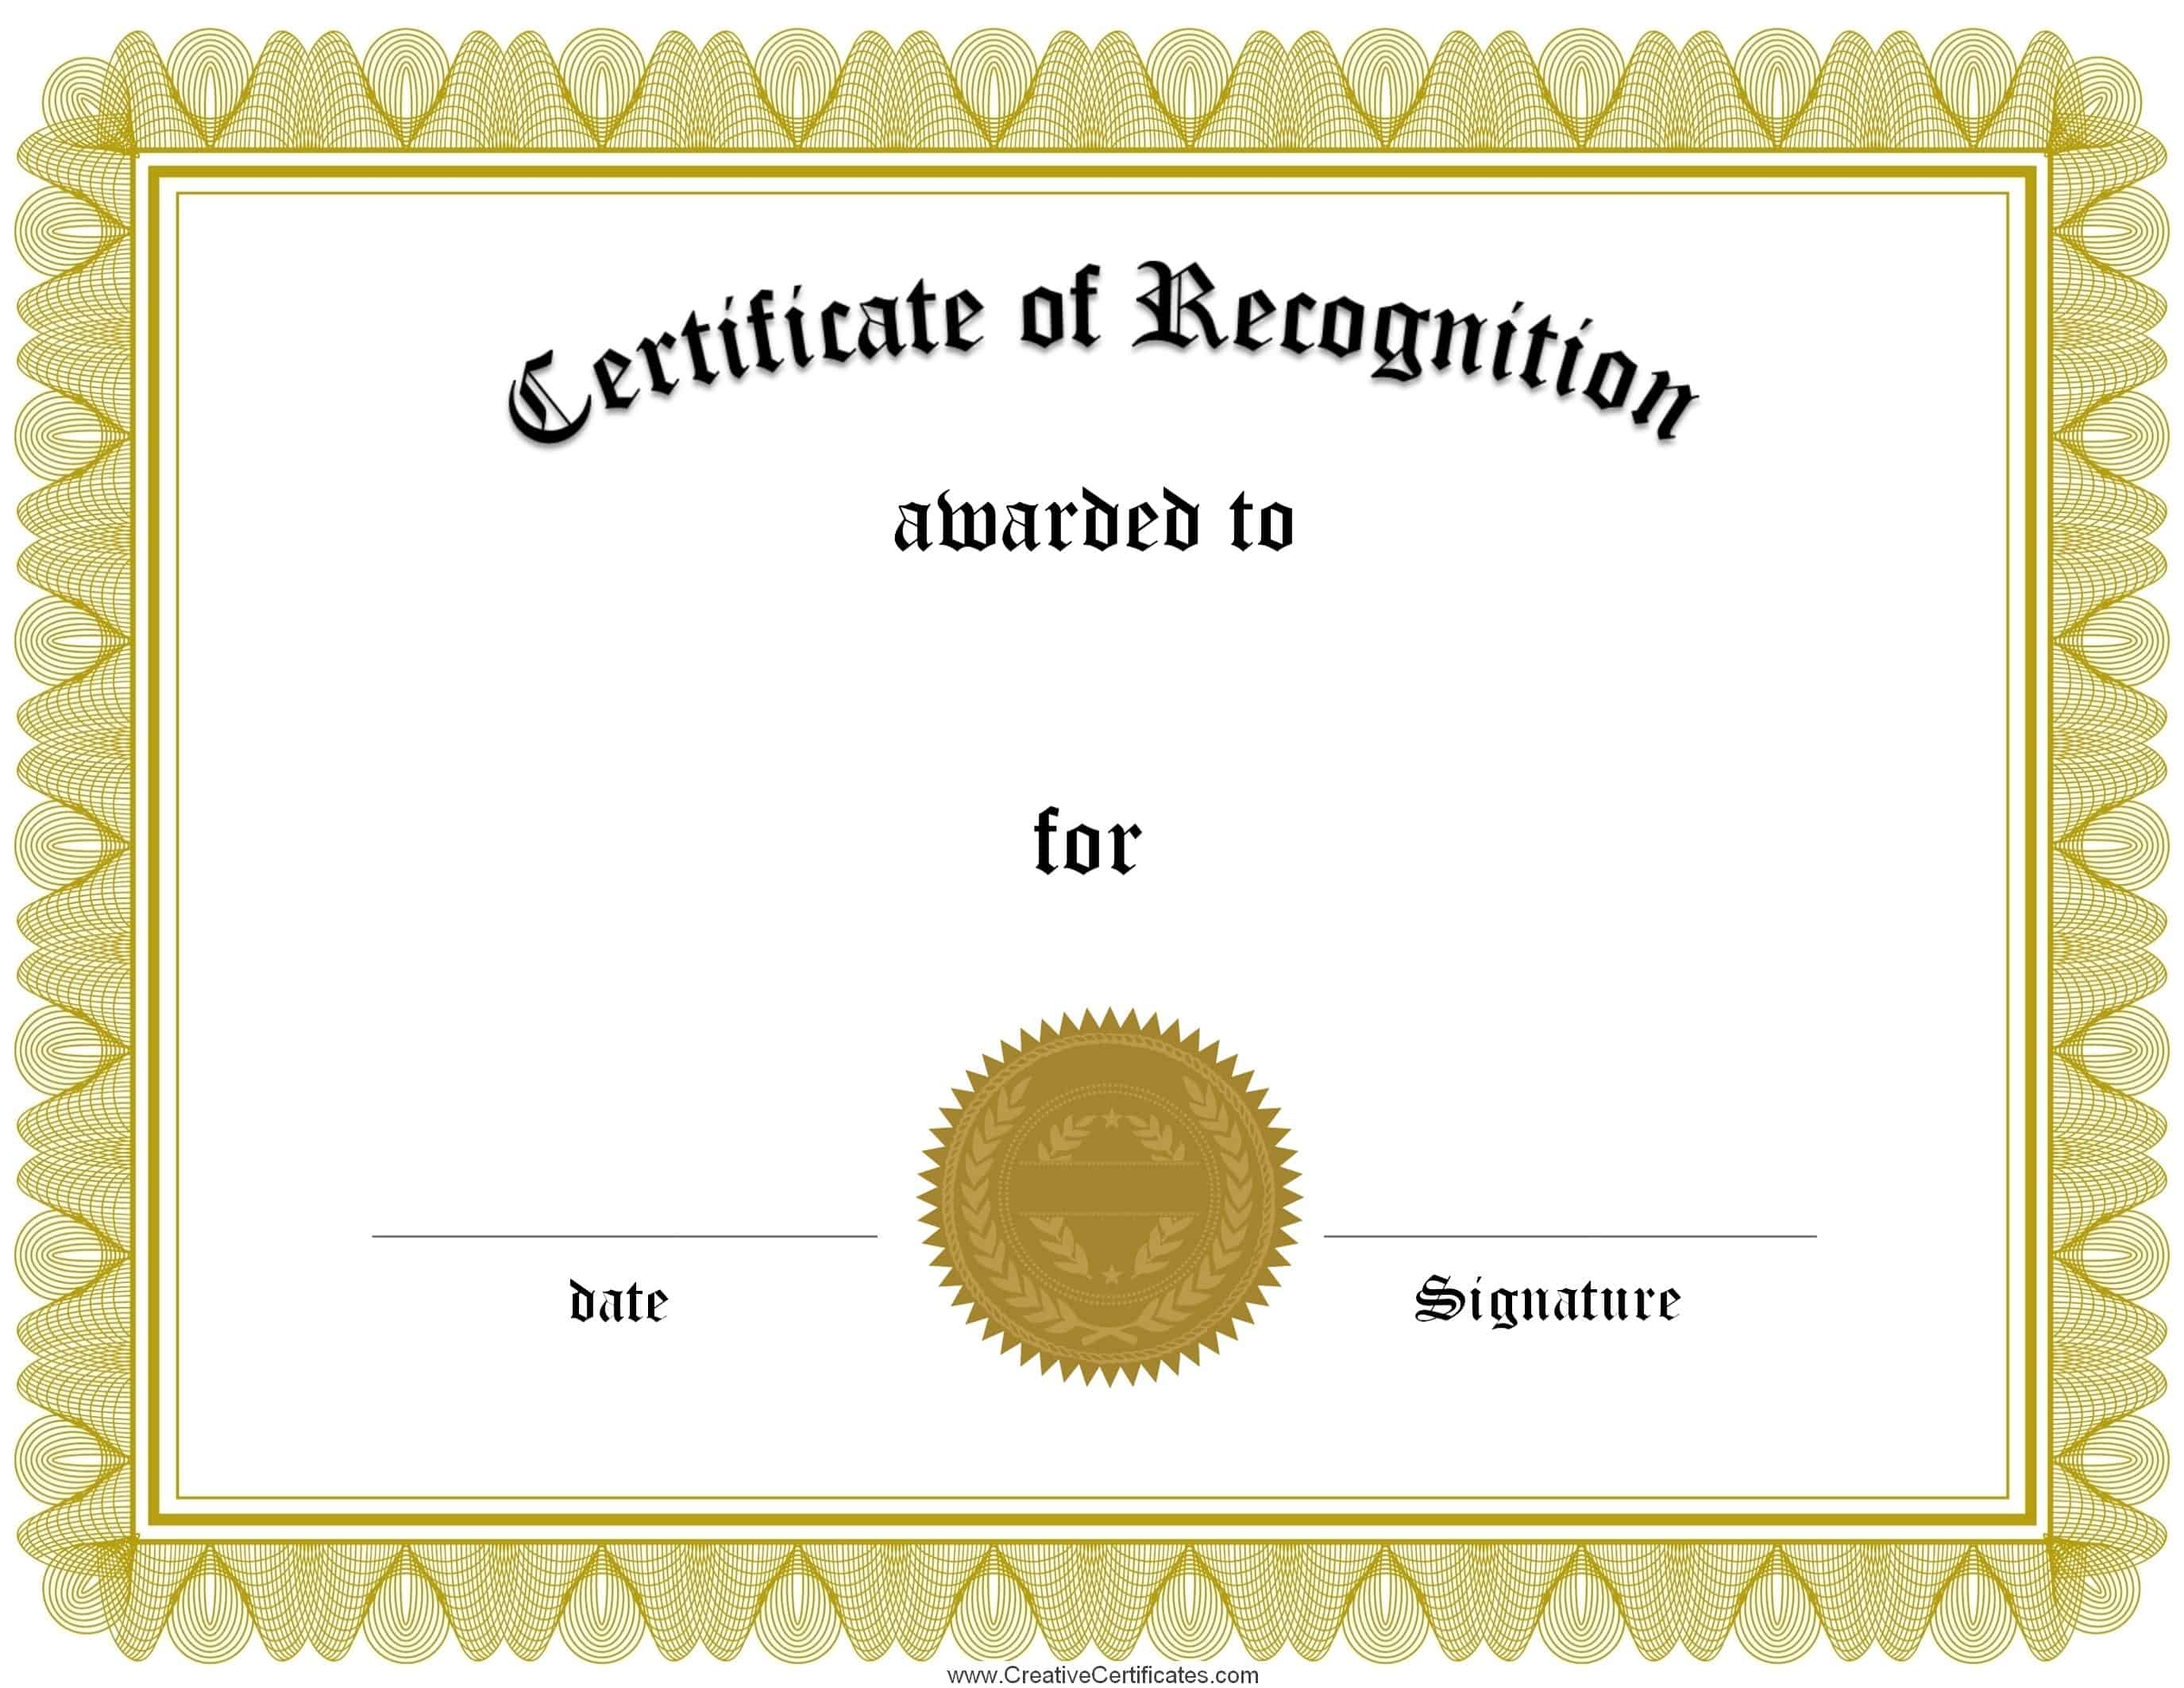 Free certificate of recognition template customize online ornate gold yelopaper Image collections